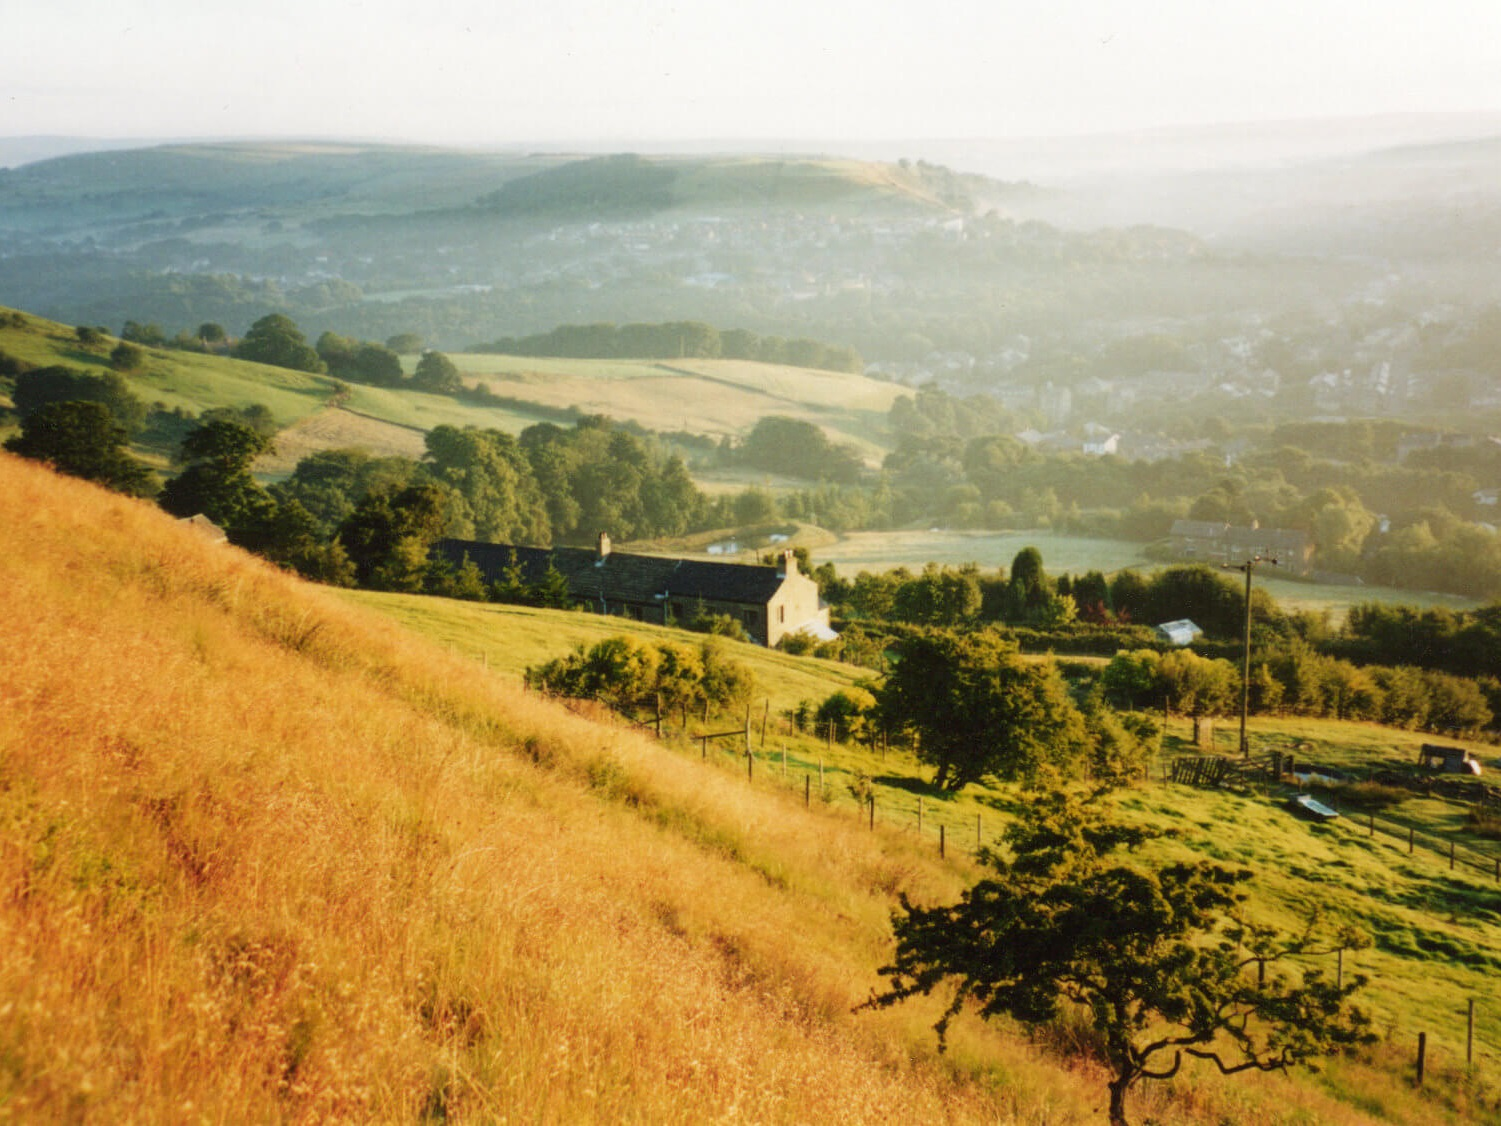 Tippett Farm from the mountain track